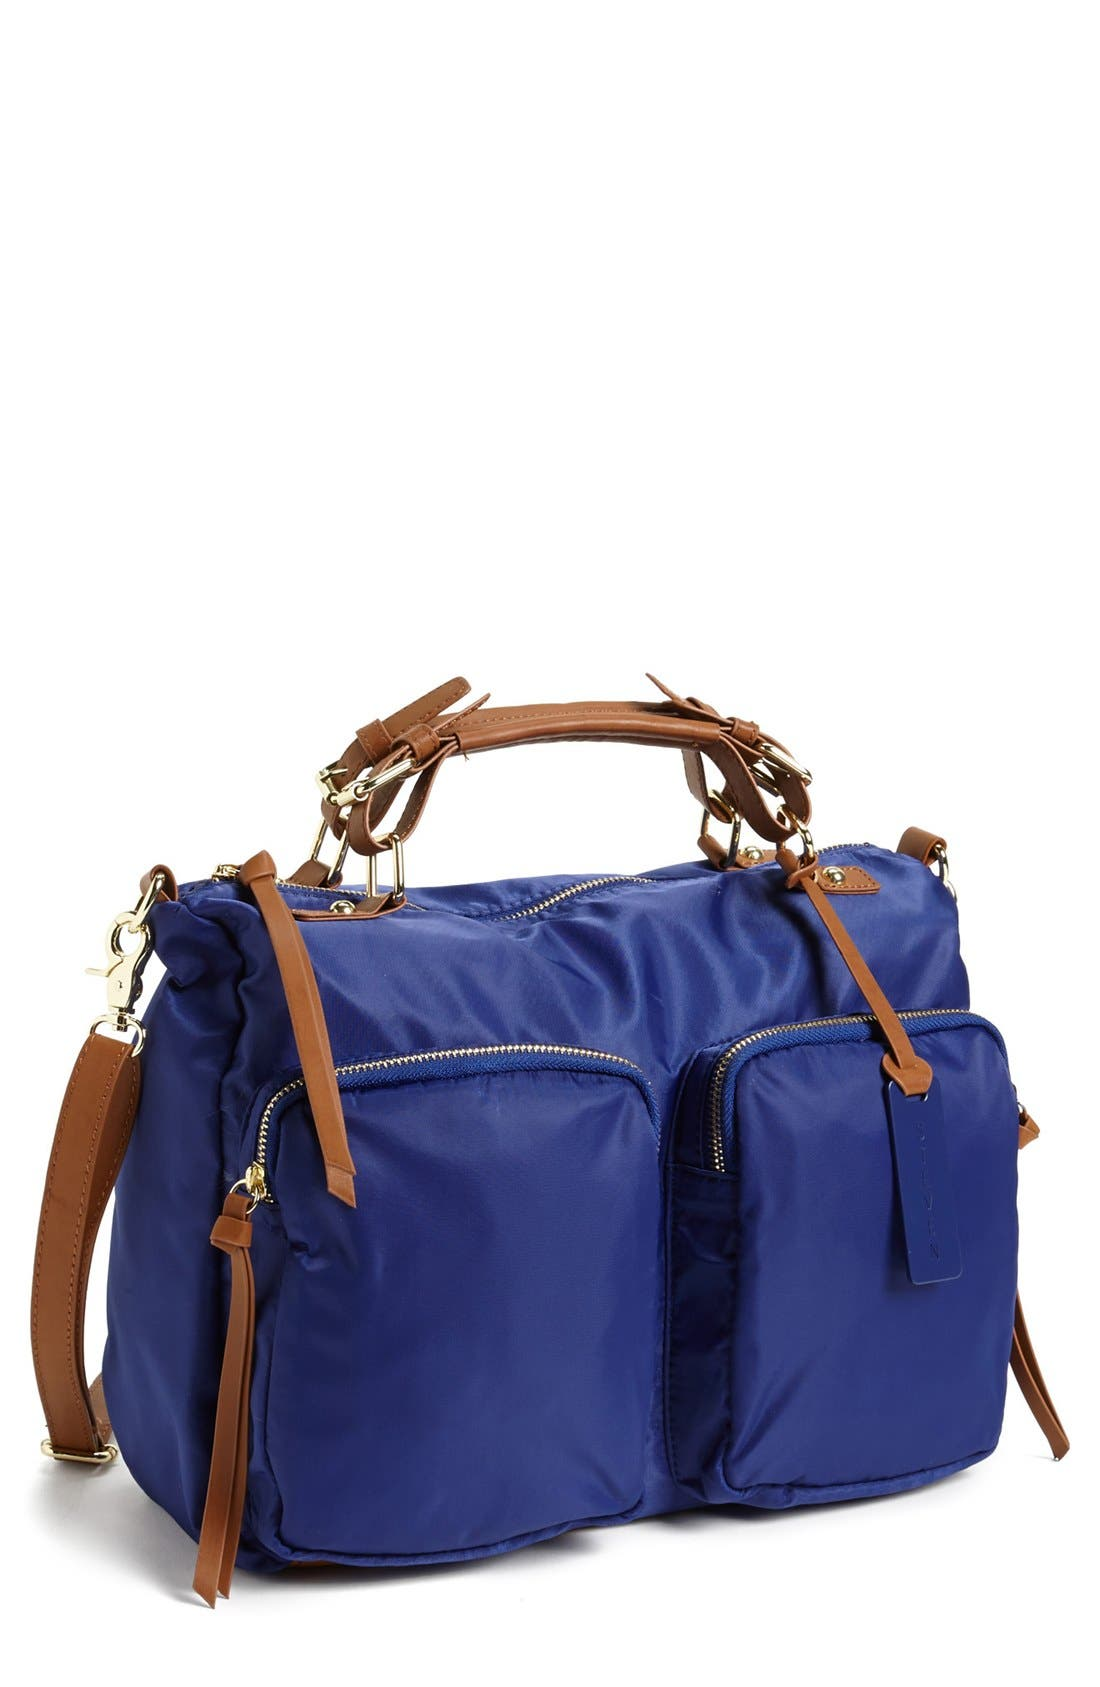 Main Image - Steven by Steve Madden 'Lighten Up' Satchel